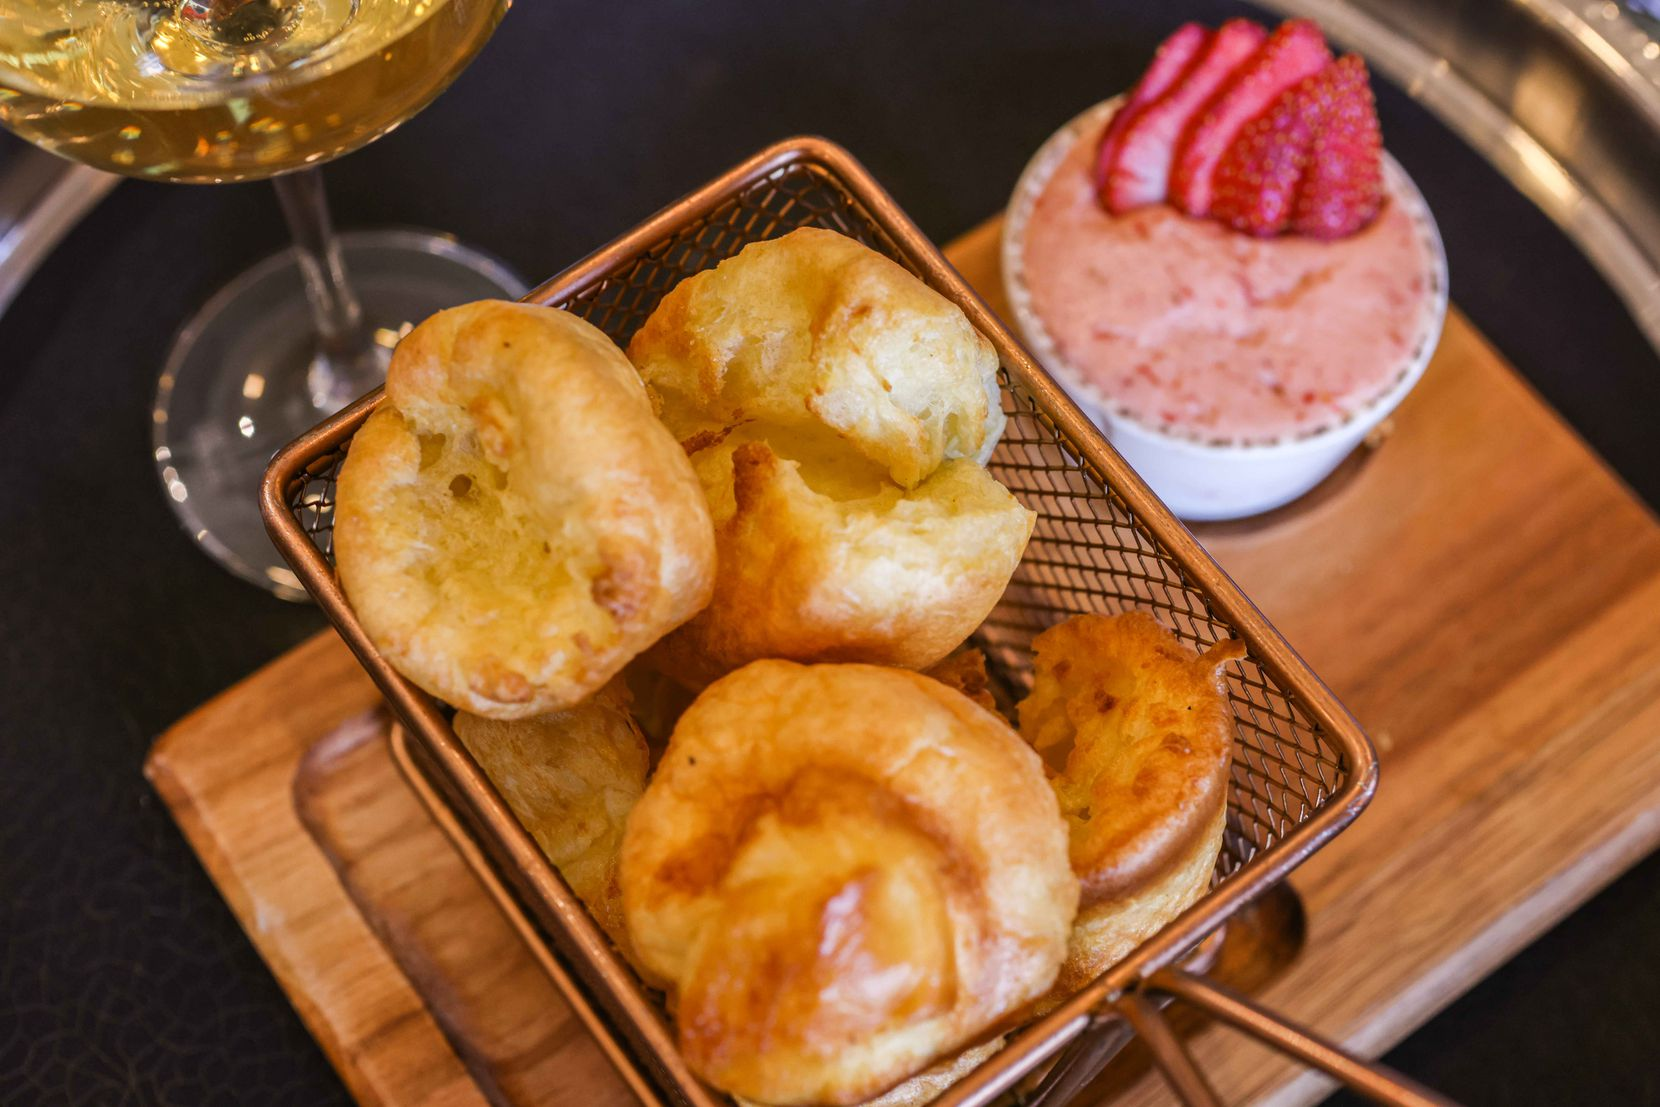 Miniature popovers with strawberry and Texas honey compound butter by Herd and Hearth on Friday, March 19, 2021.